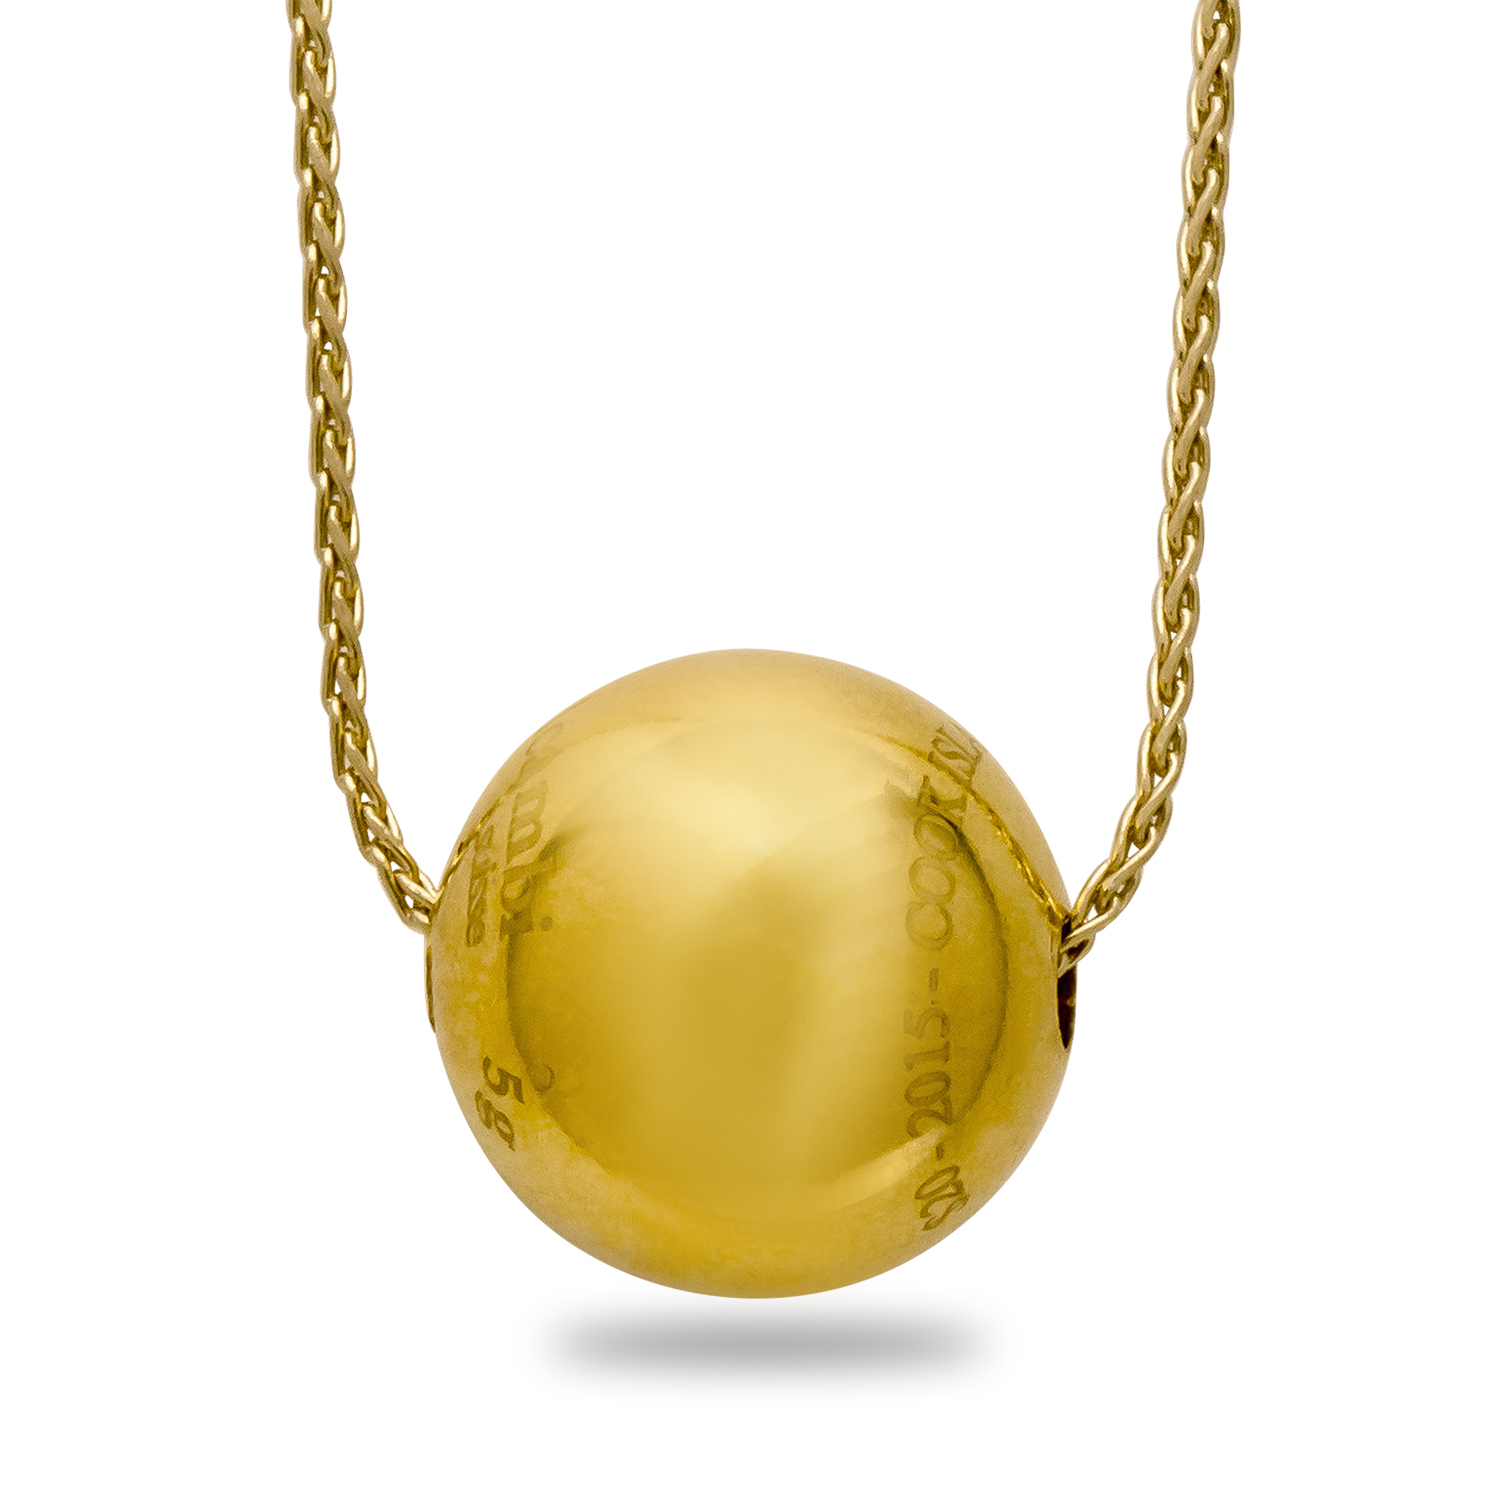 2015 5 gram Cook Islands $20 Gold Sphere Valcambi (w/Chain)